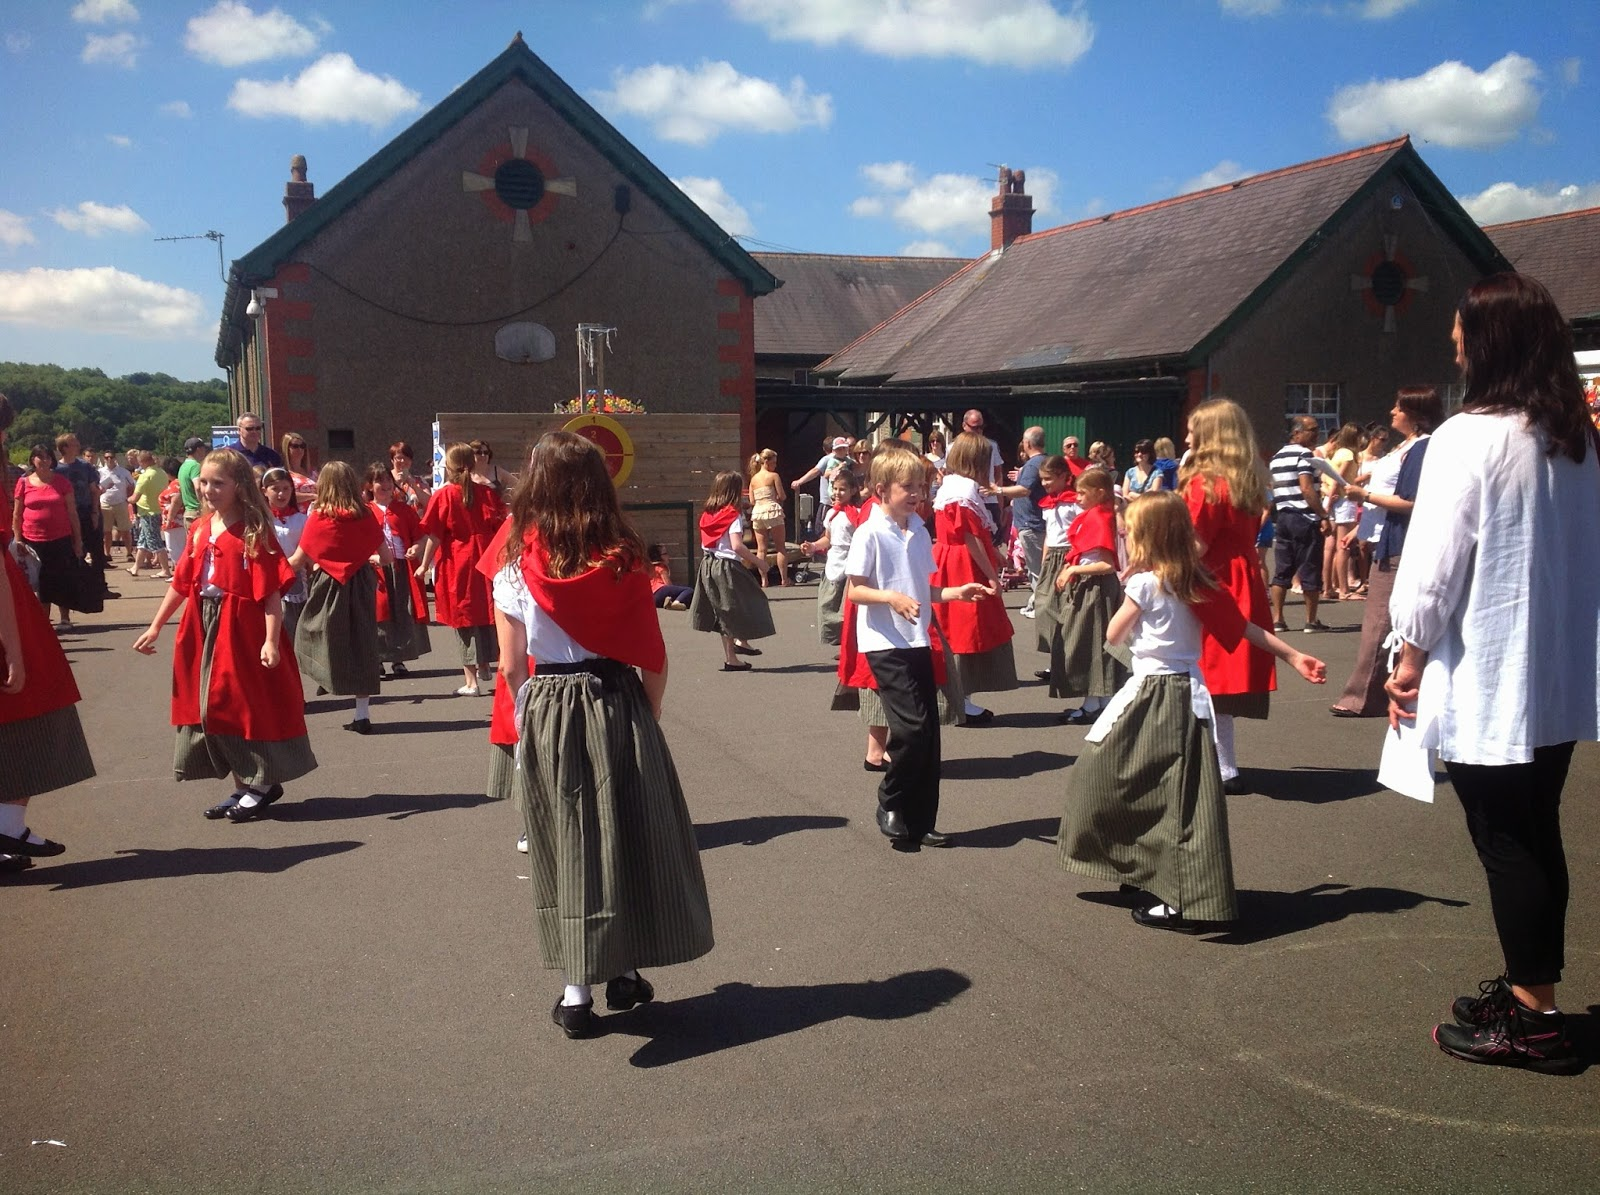 school fete Directed by stuart allen with barry evans, george camiller, tommy godfrey, jacki harding the school hosts a charity bazaar and needs a celebrity to be the master of ceremonies.